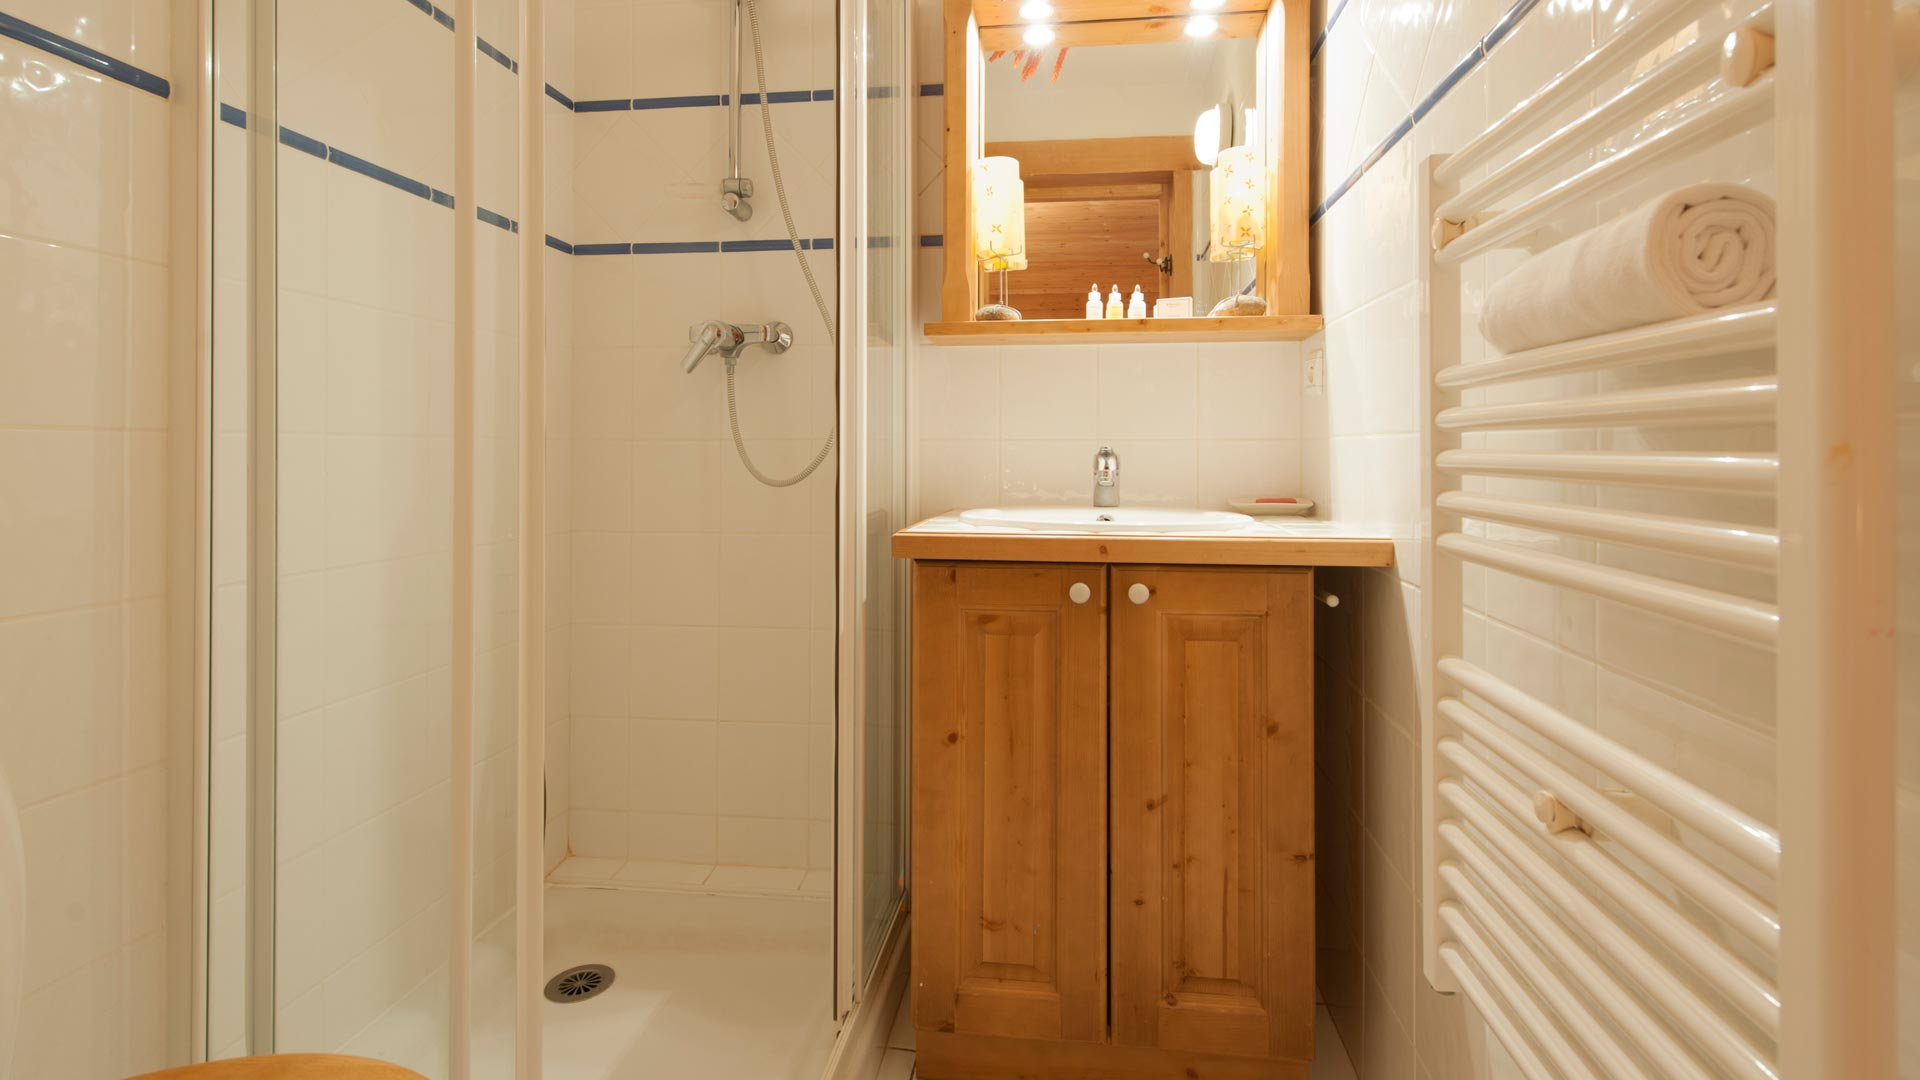 Ensuite Shower Room in Sainte Foy Apt. in Ste Foy